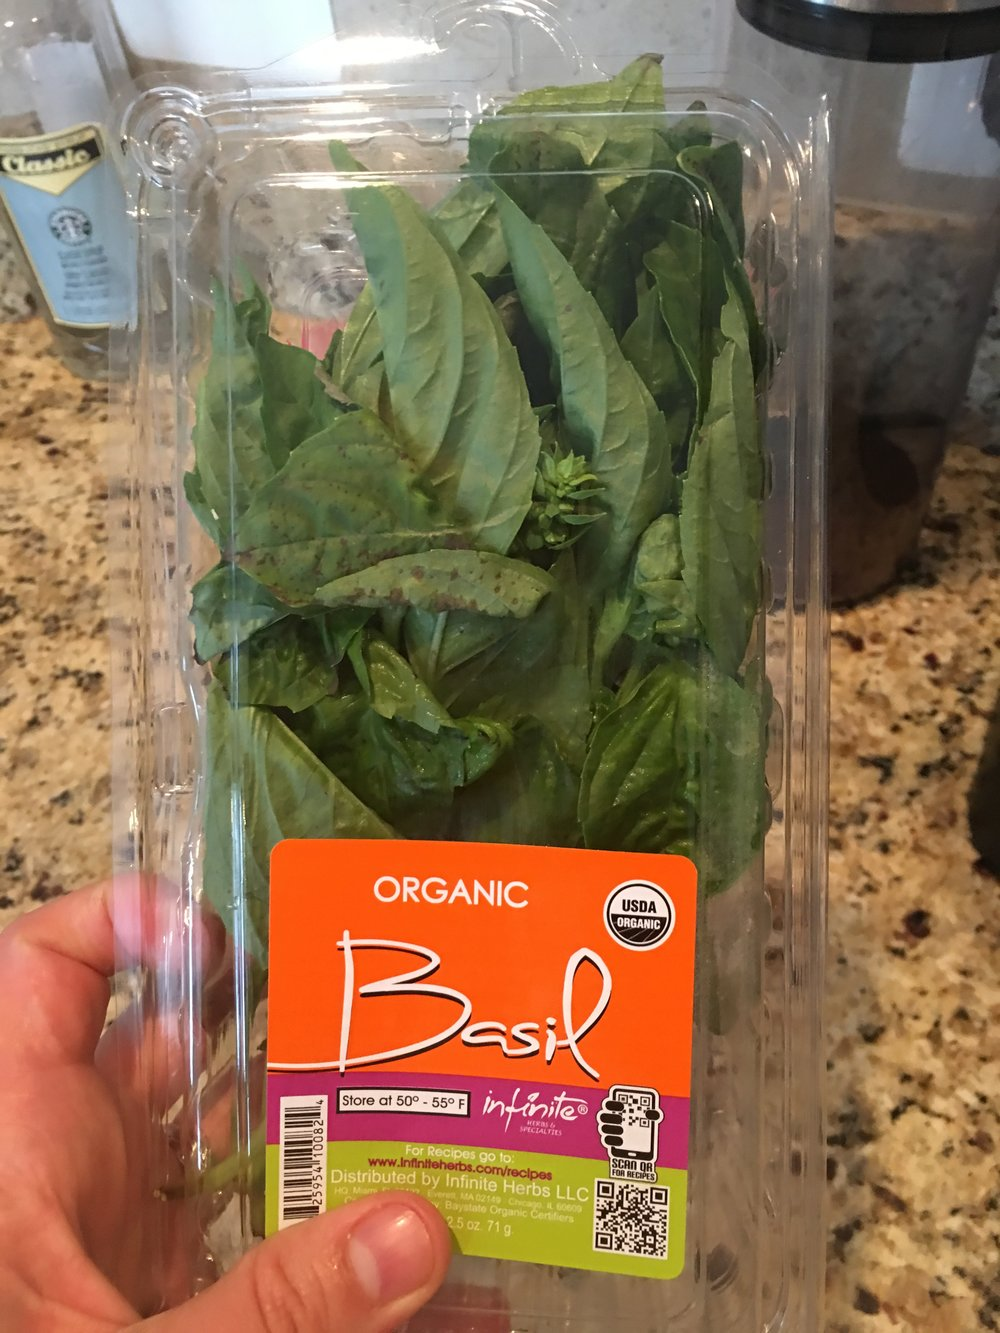 This is the basil i chopped up.